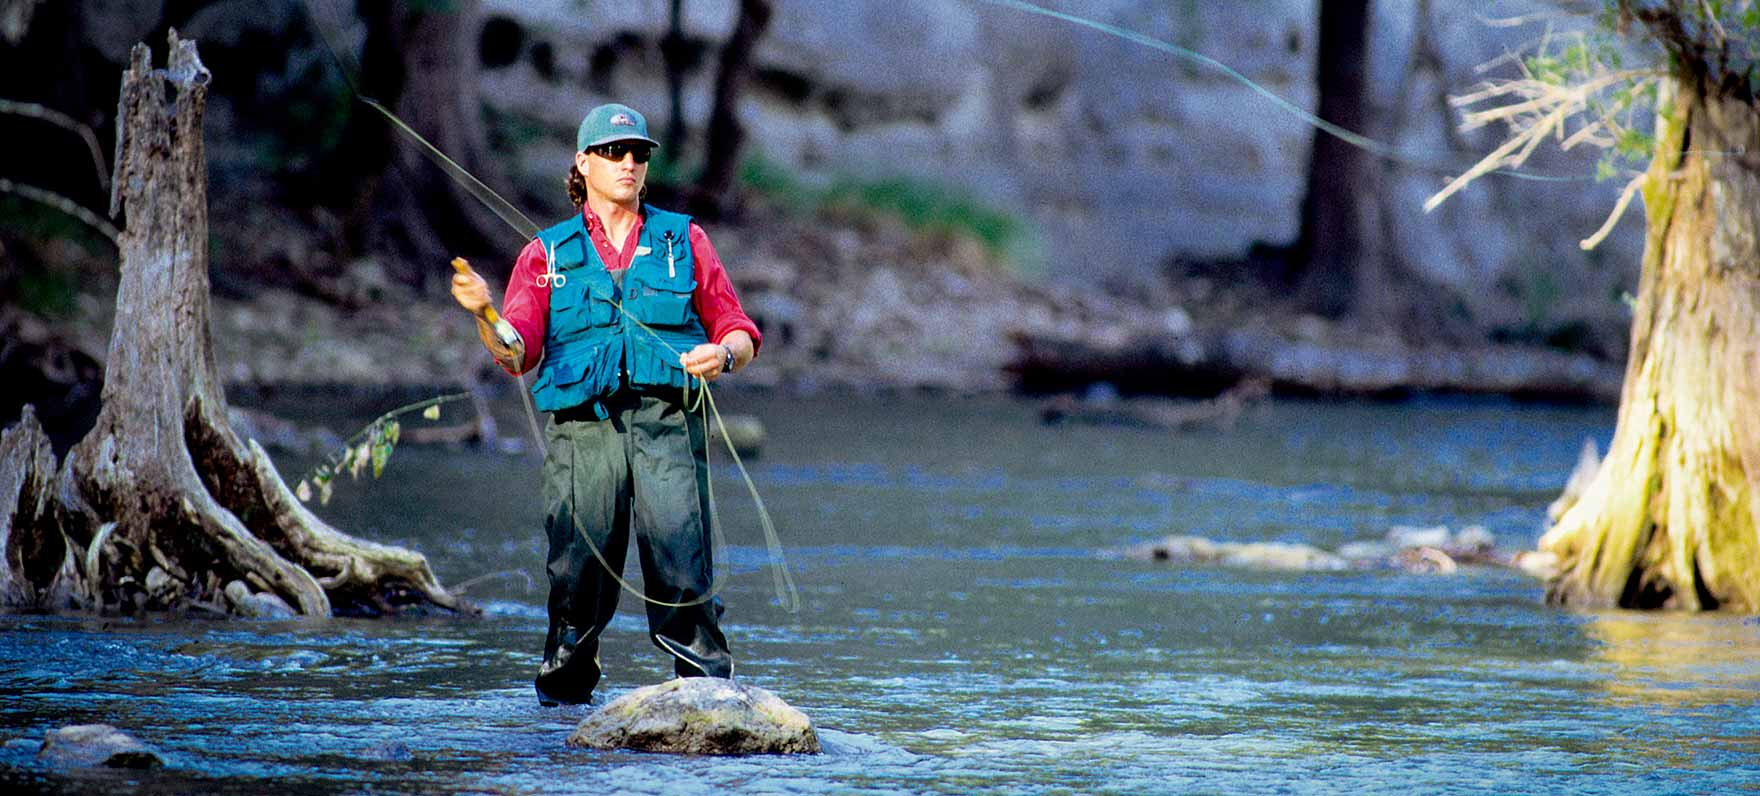 Fly Fishing in the Guadalupe River.